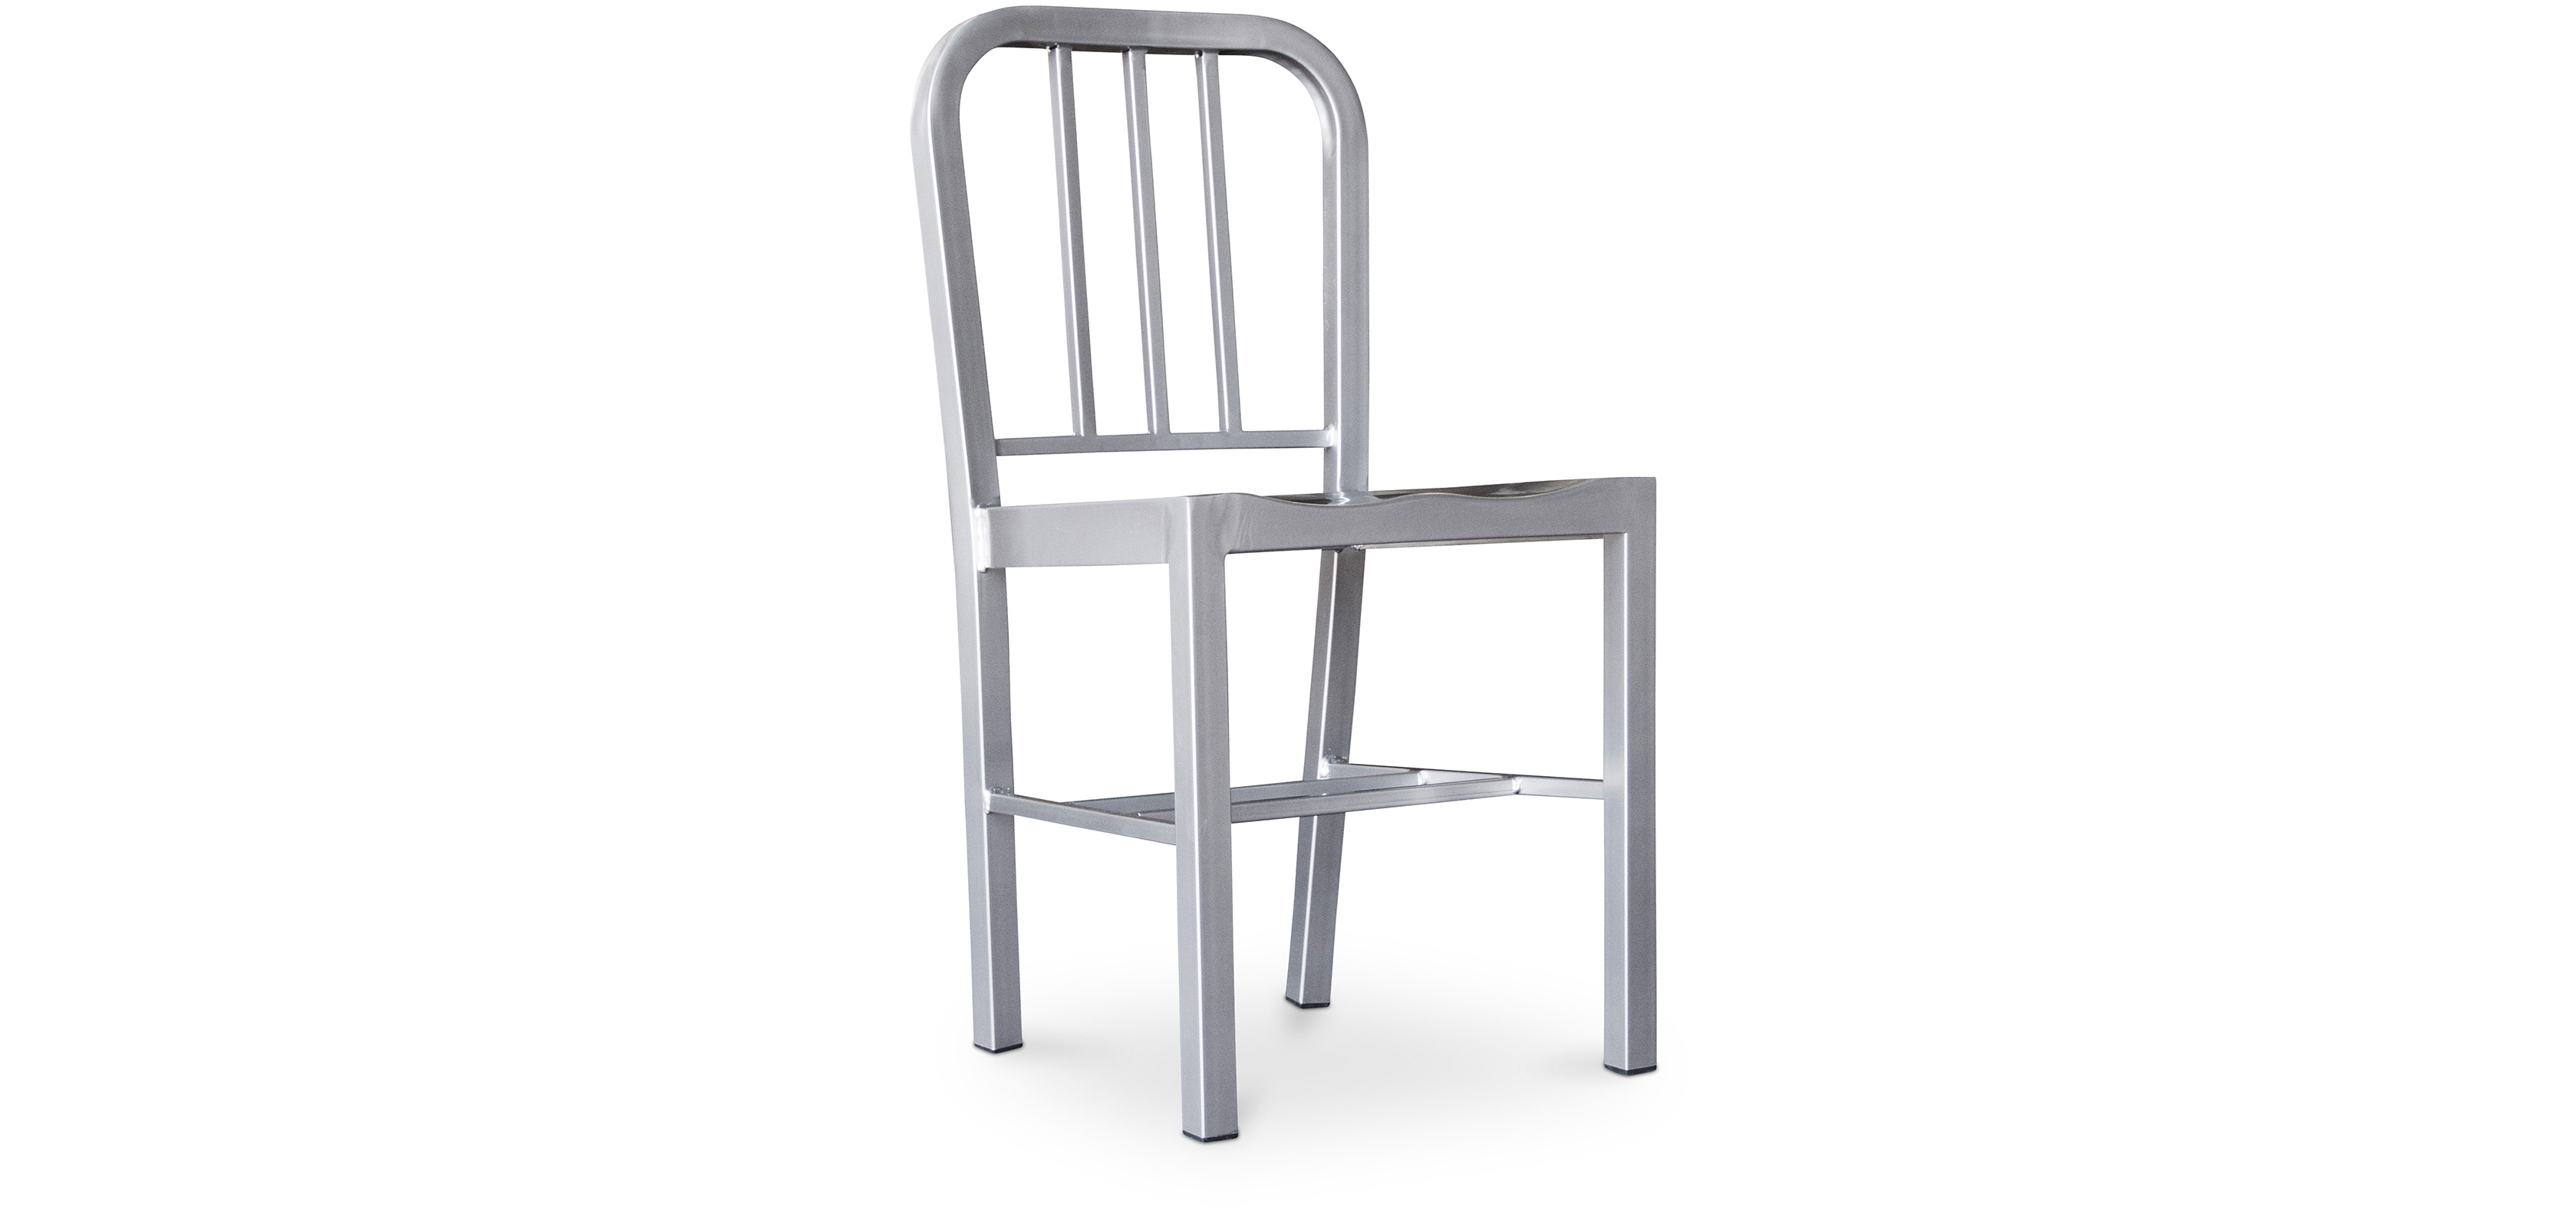 Buy  Navy chair steel inspiration Emeco - Style Silver 50141 - in the UK